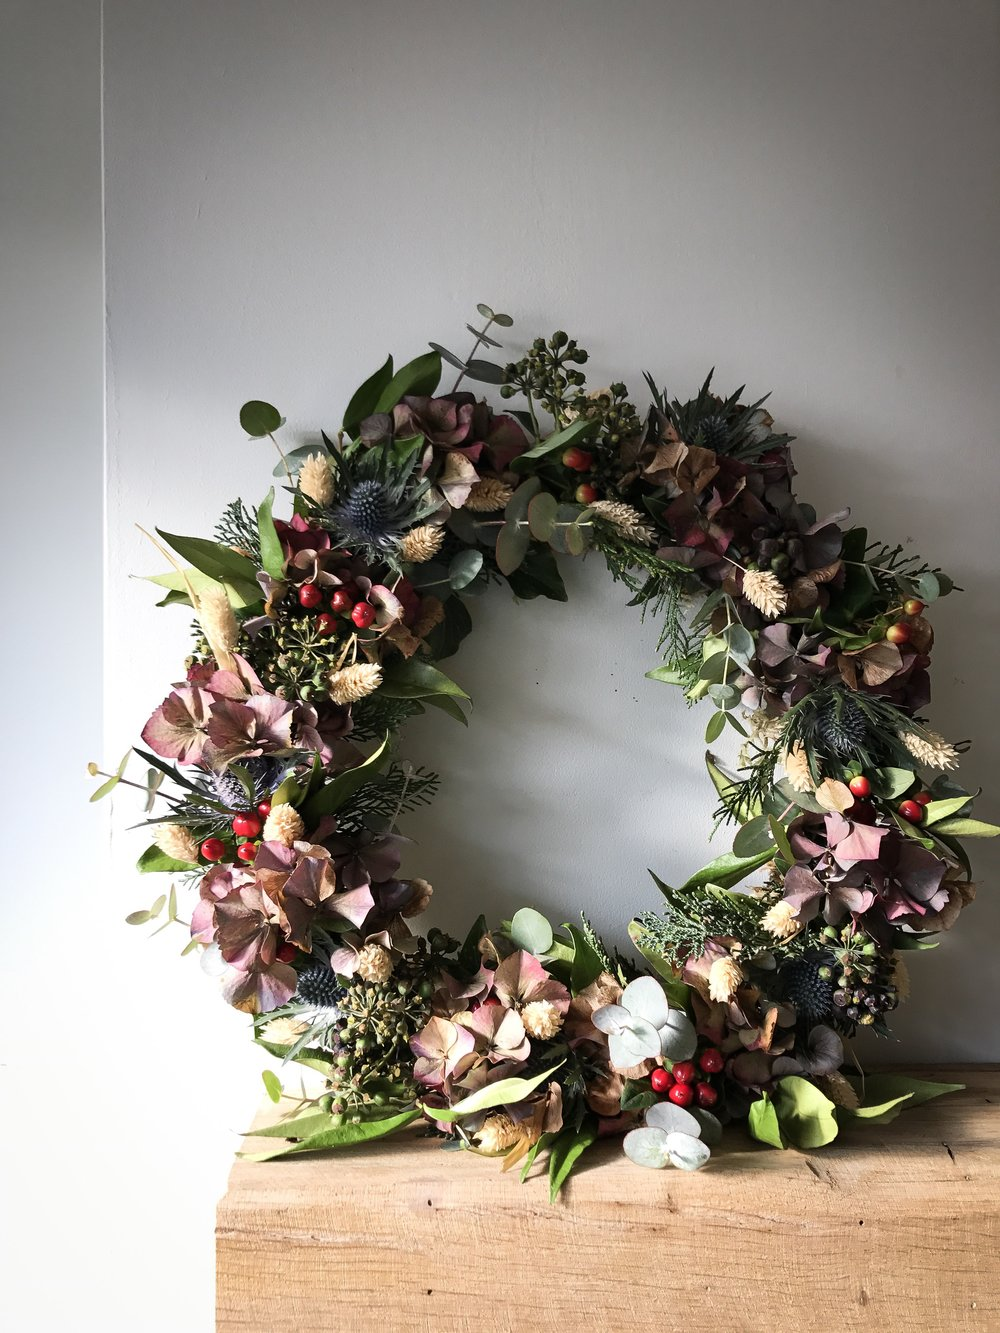 Wreaths will be a big part of how I stay occupied this Winter